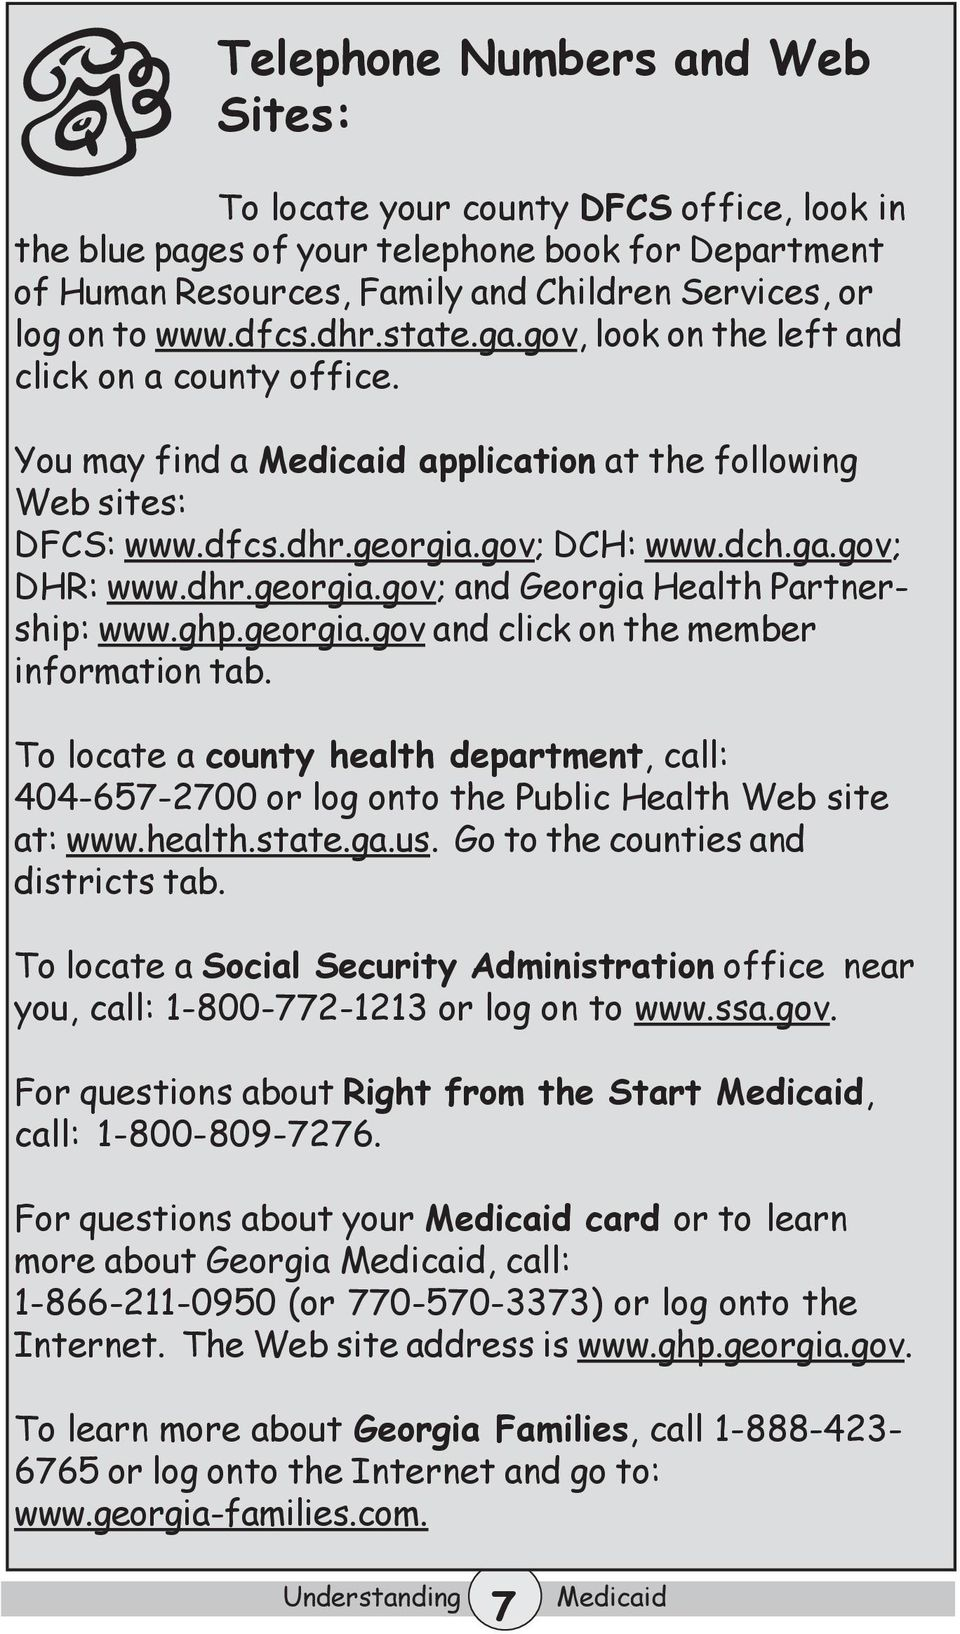 ghp.georgia.gov and click on the member information tab. To locate a county health department, call: 404-657-2700 or log onto the Public Health Web site at: www.health.state.ga.us.